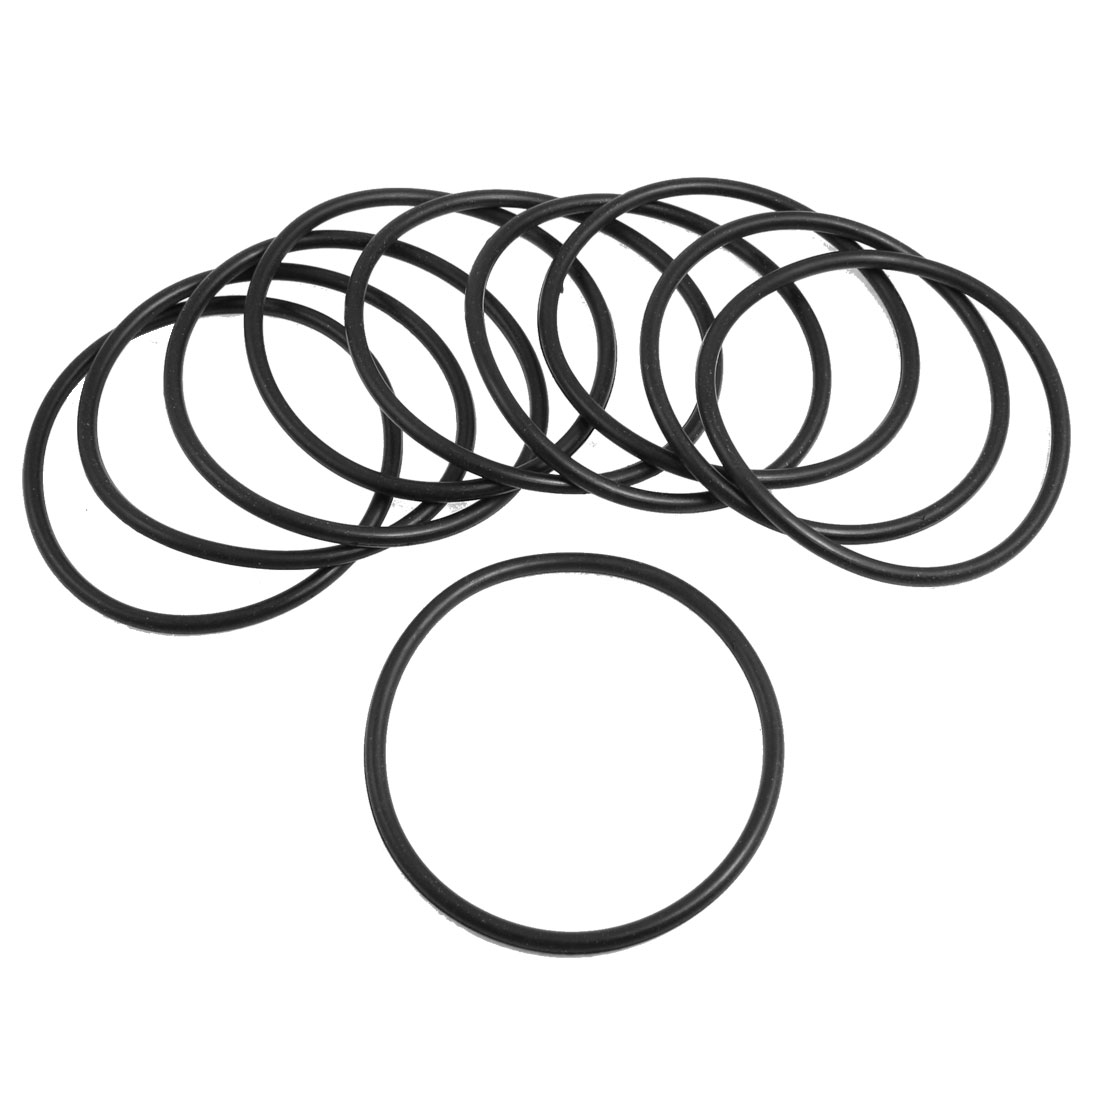 10 Pcs Oil Seal O Rings Black Nitrile Rubber 82mm OD 4mm Thickness